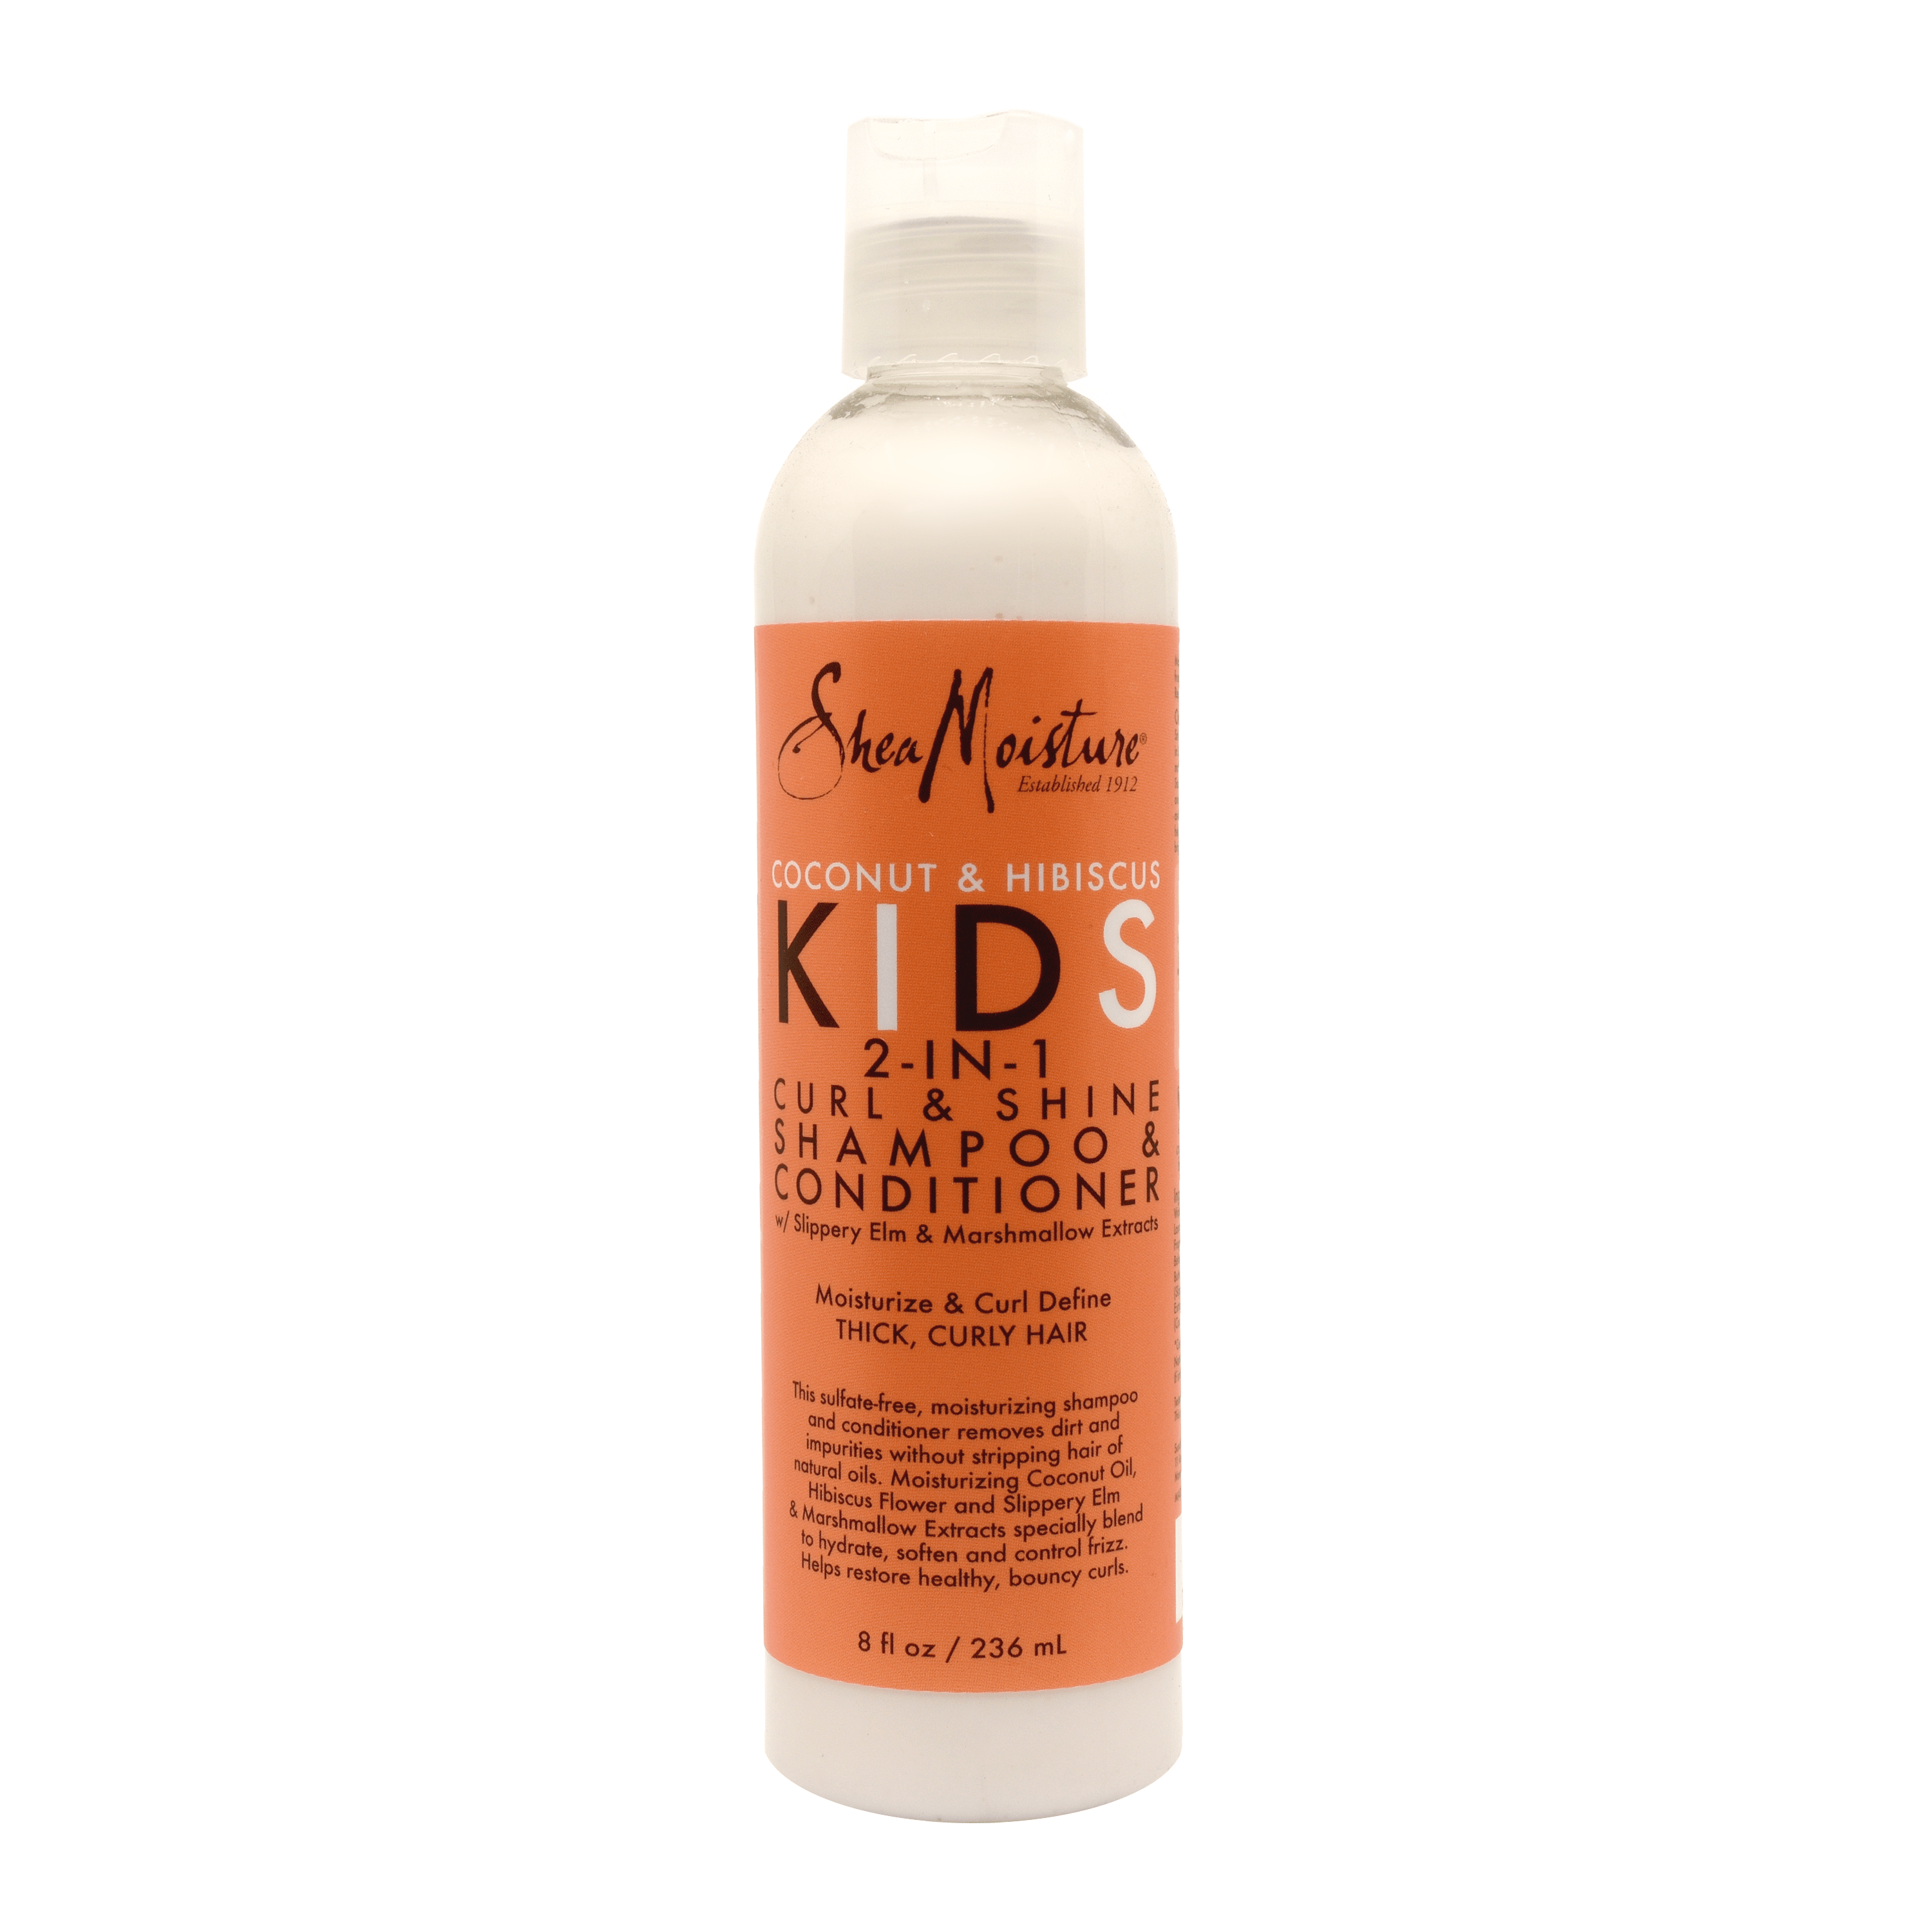 Buy Shea Moisture Coconut & Hibiscus Kids 2 In 1 Curl & Shine Shampoo & Conditioner Online